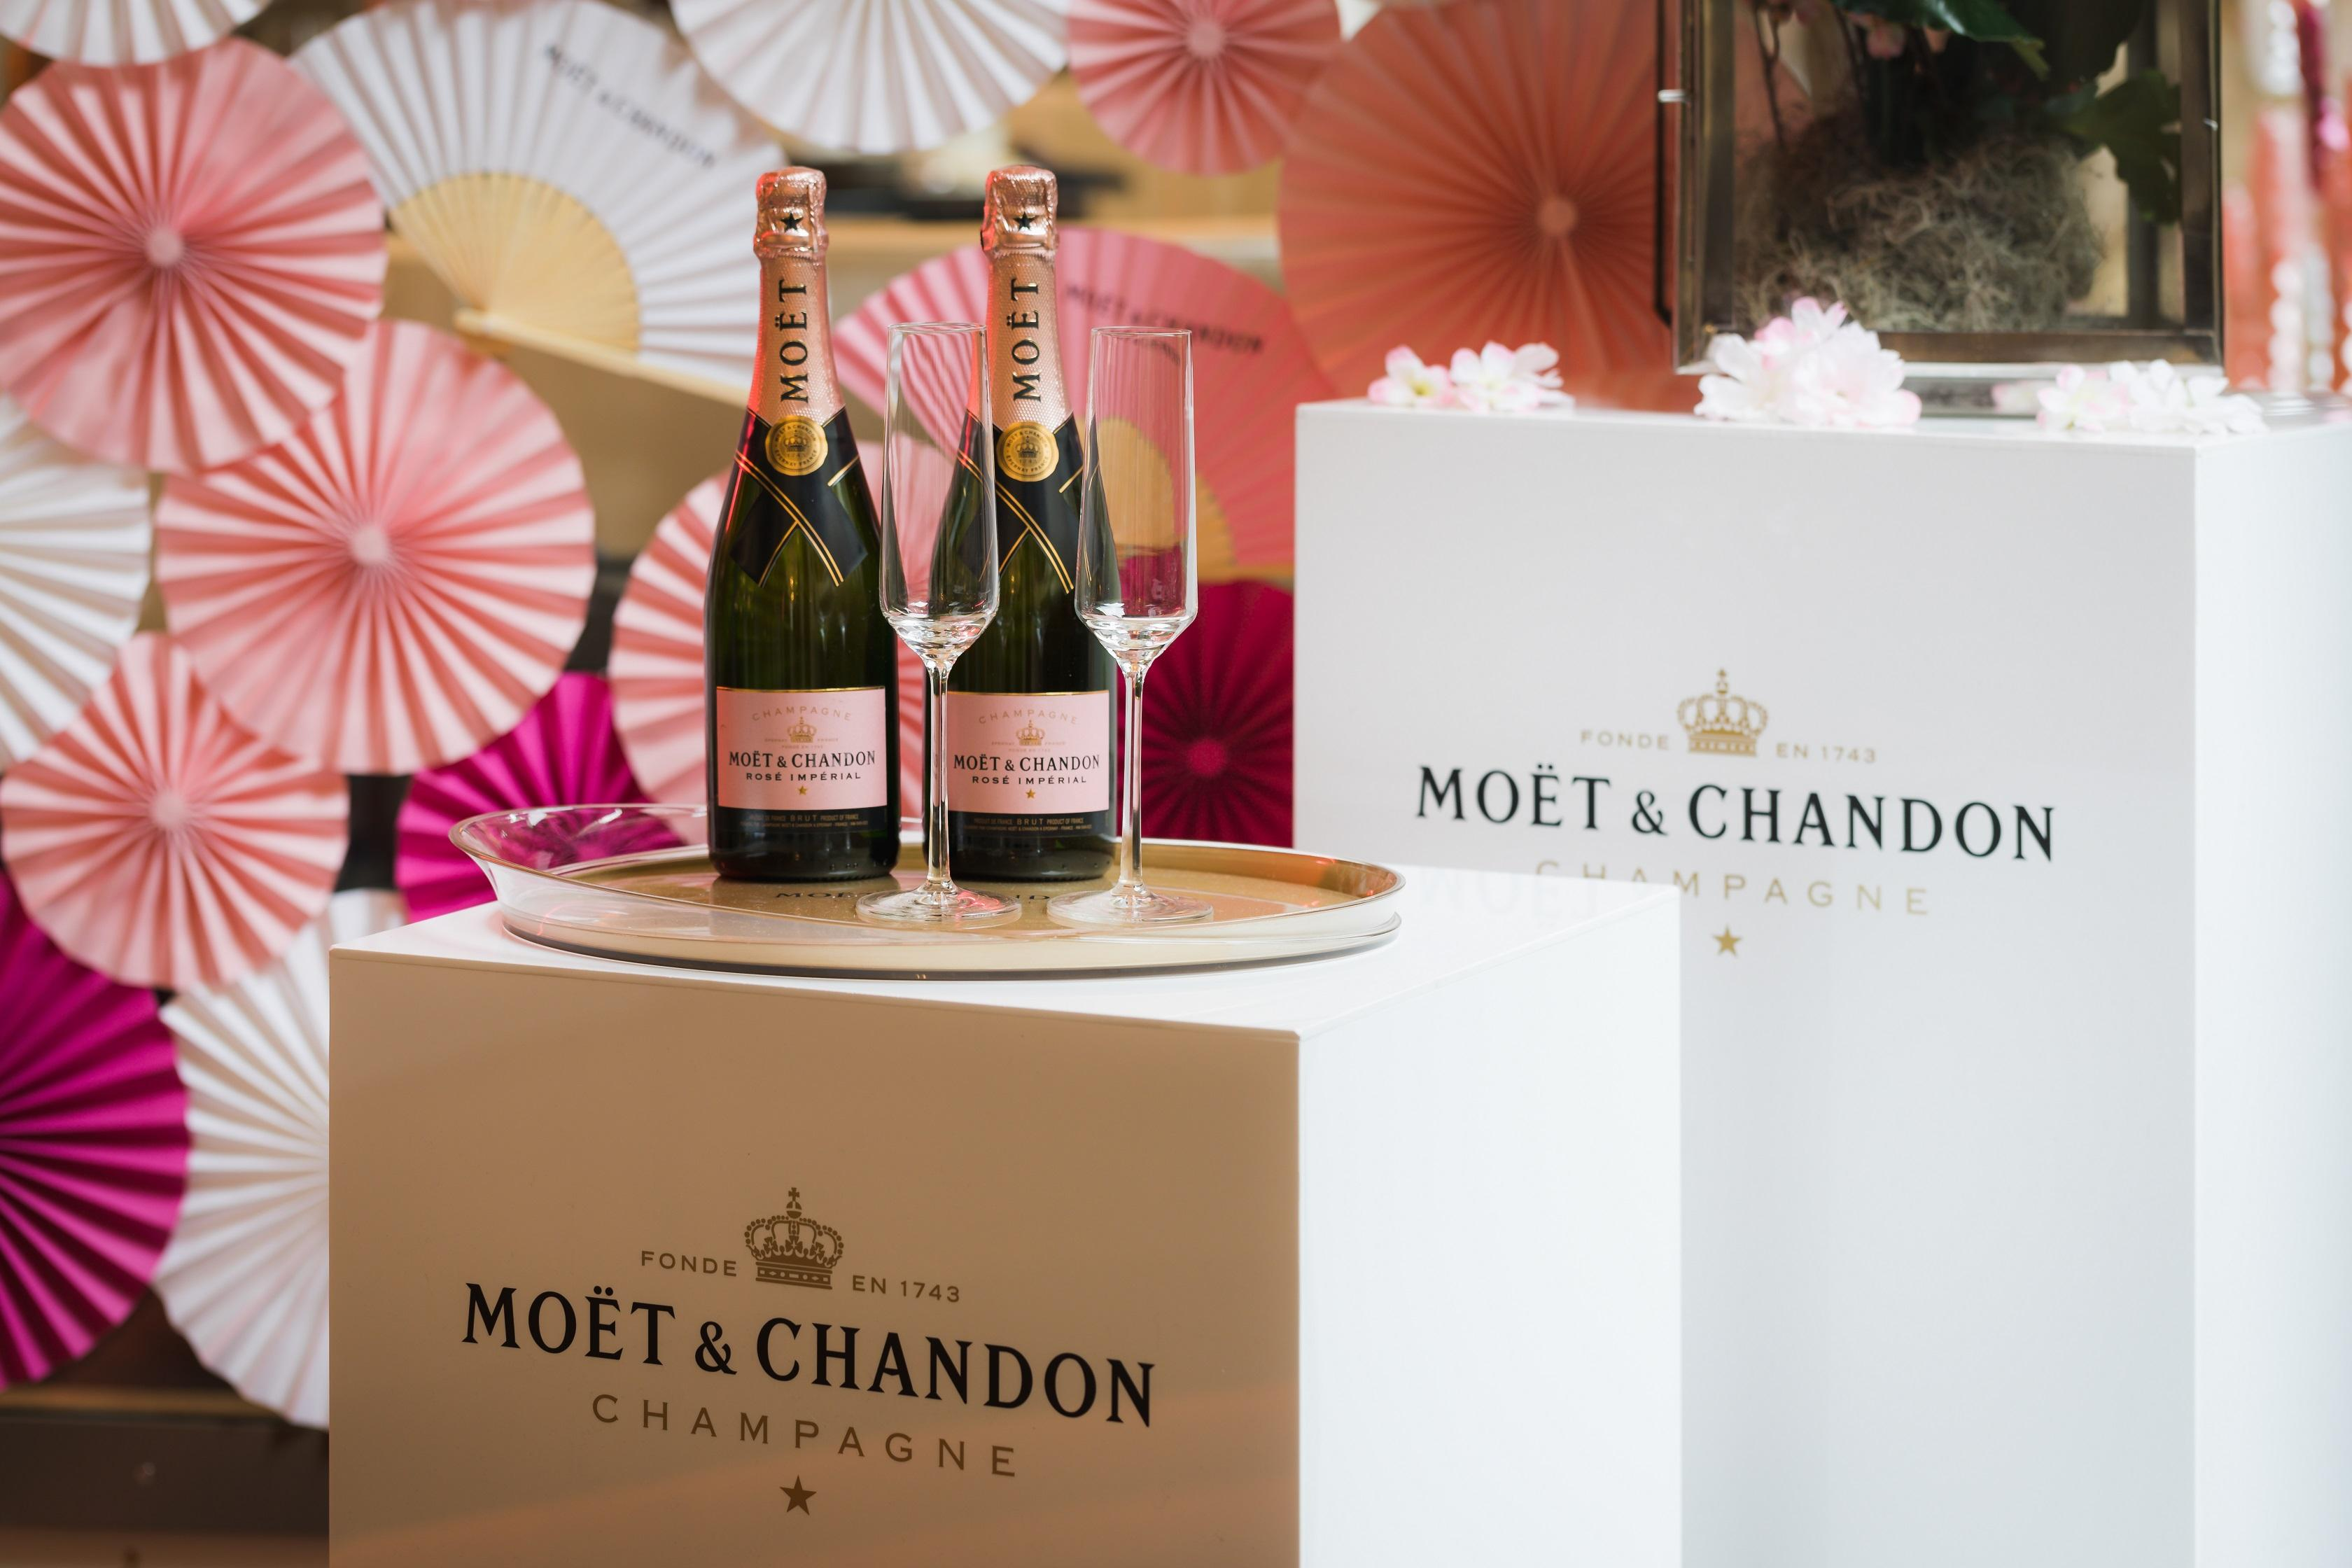 #MoëtMoment Omakase Experience at Peter Street Kitchen